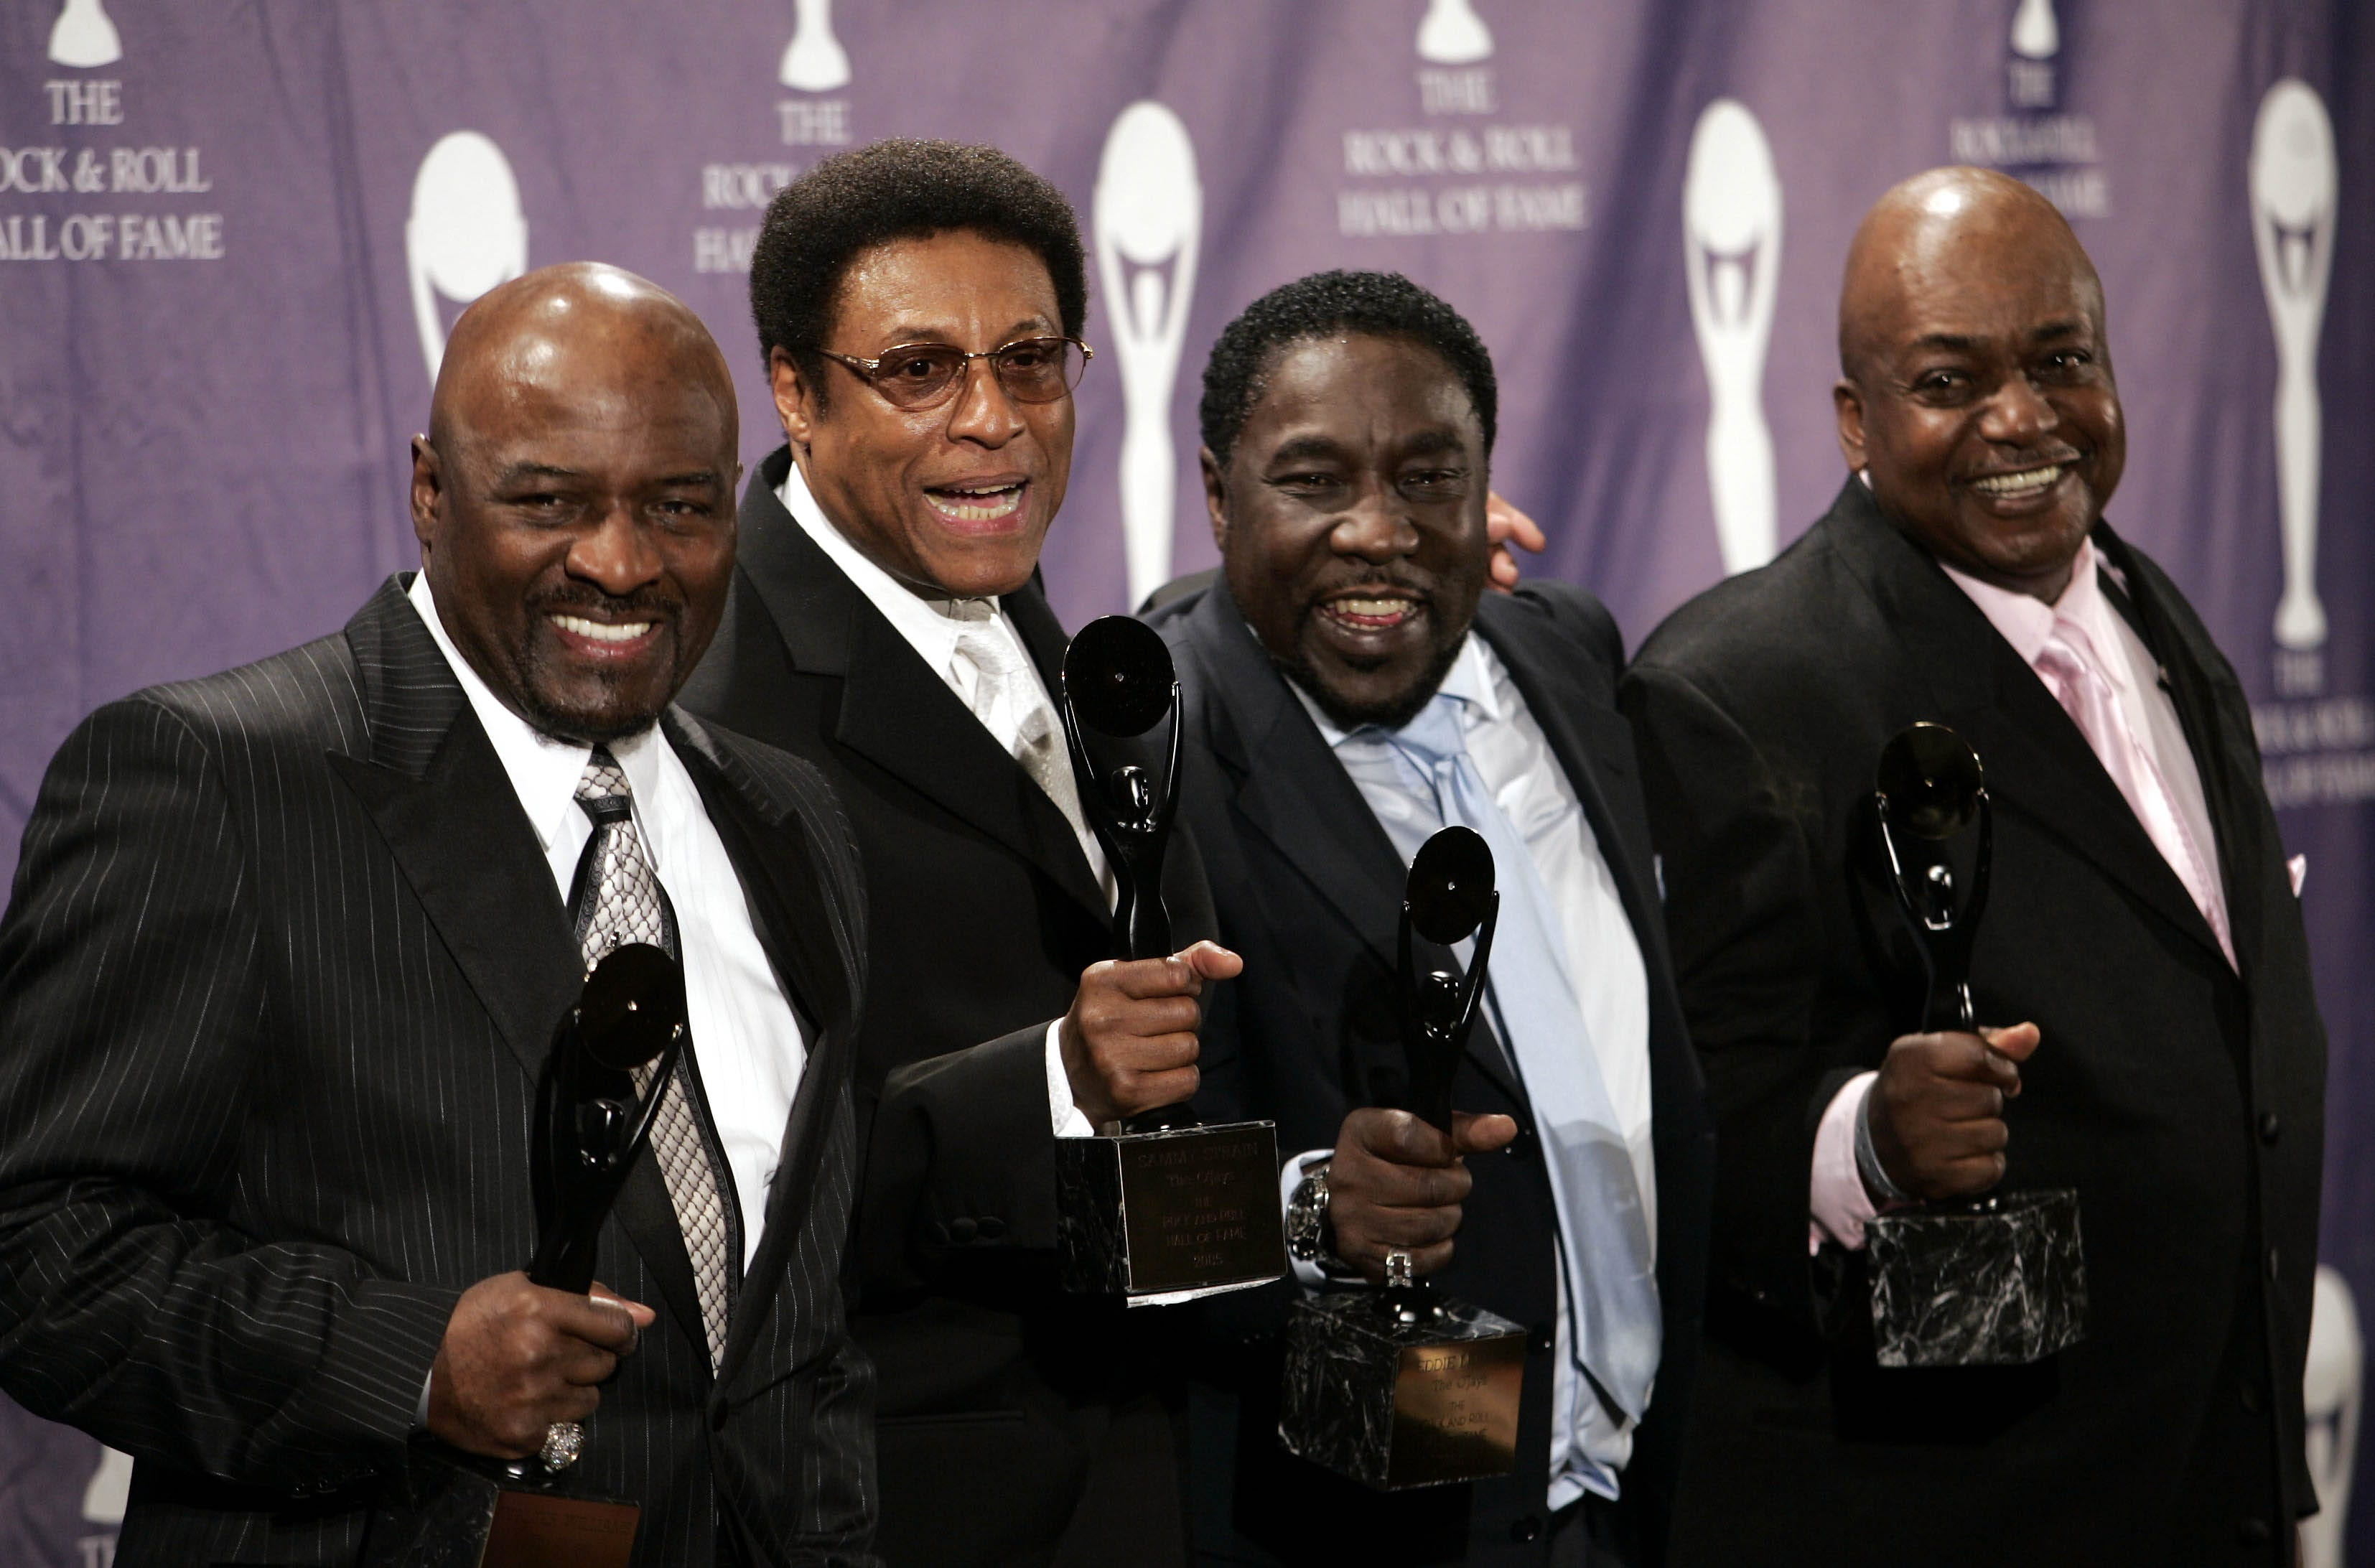 Bill Isles, co-founder of R&B hitmakers The O'Jays, dies at 78